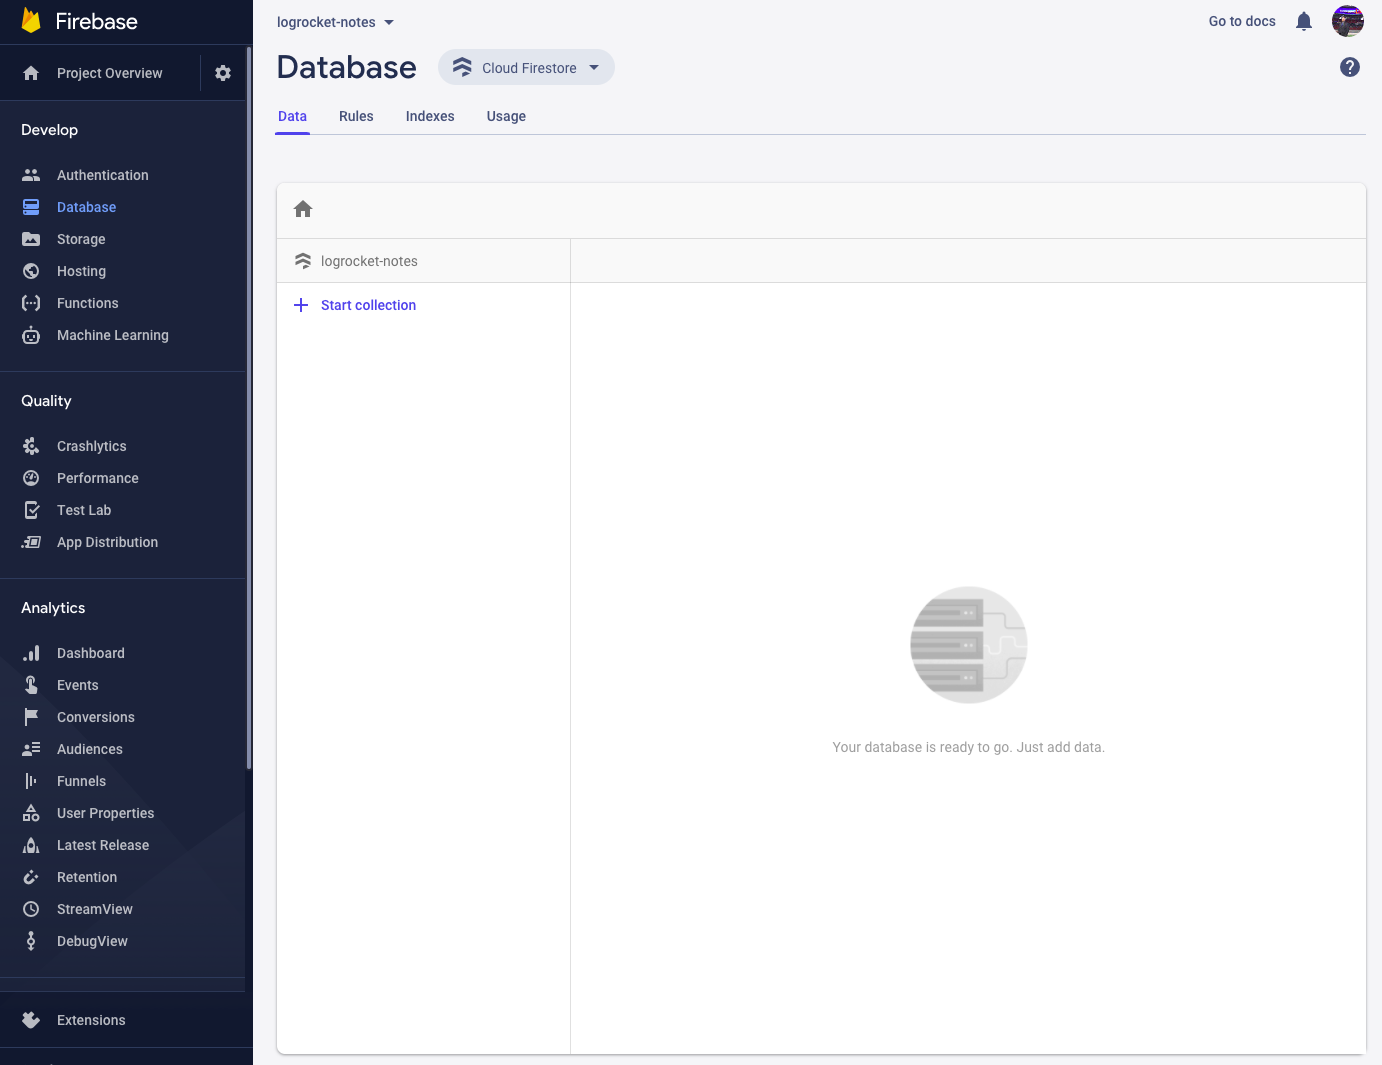 Our newly-created Firestore database.